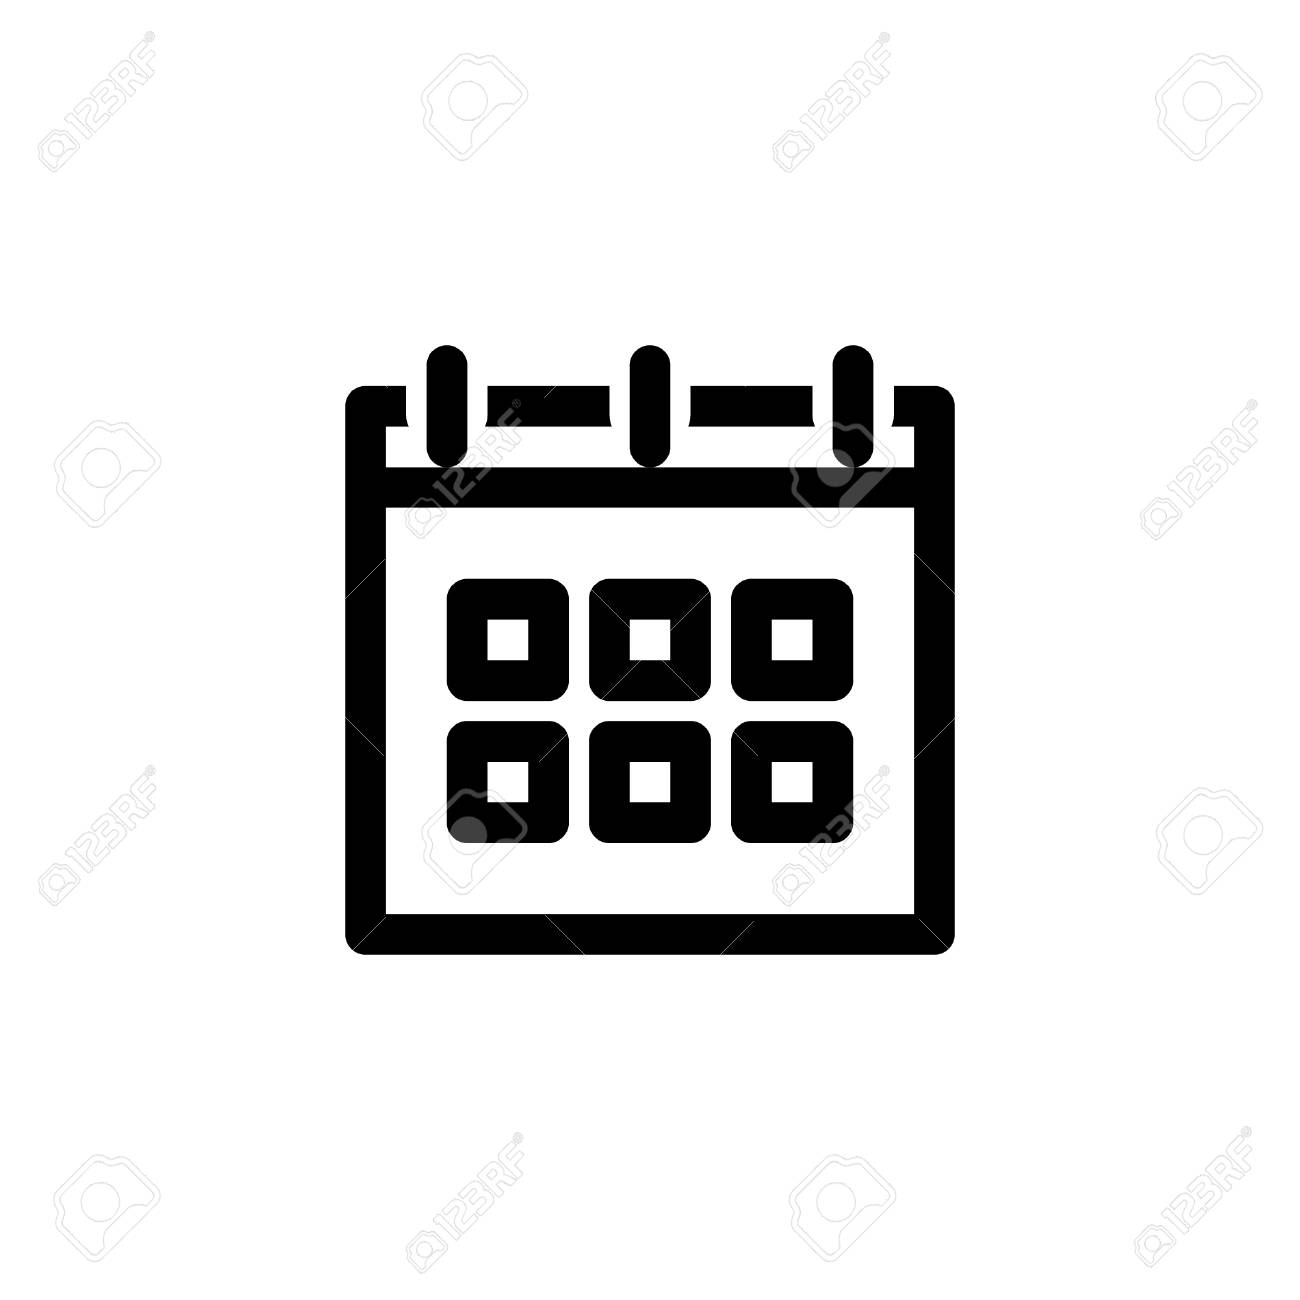 Schedule Icon With Calendar Symbol With Line Or Outline Style Royalty Free Cliparts Vectors And Stock Illustration Image 124798528 You can use these free icons and png images for your photoshop design, documents free icons png images that you can download to you computer and use in your designs. schedule icon with calendar symbol with line or outline style